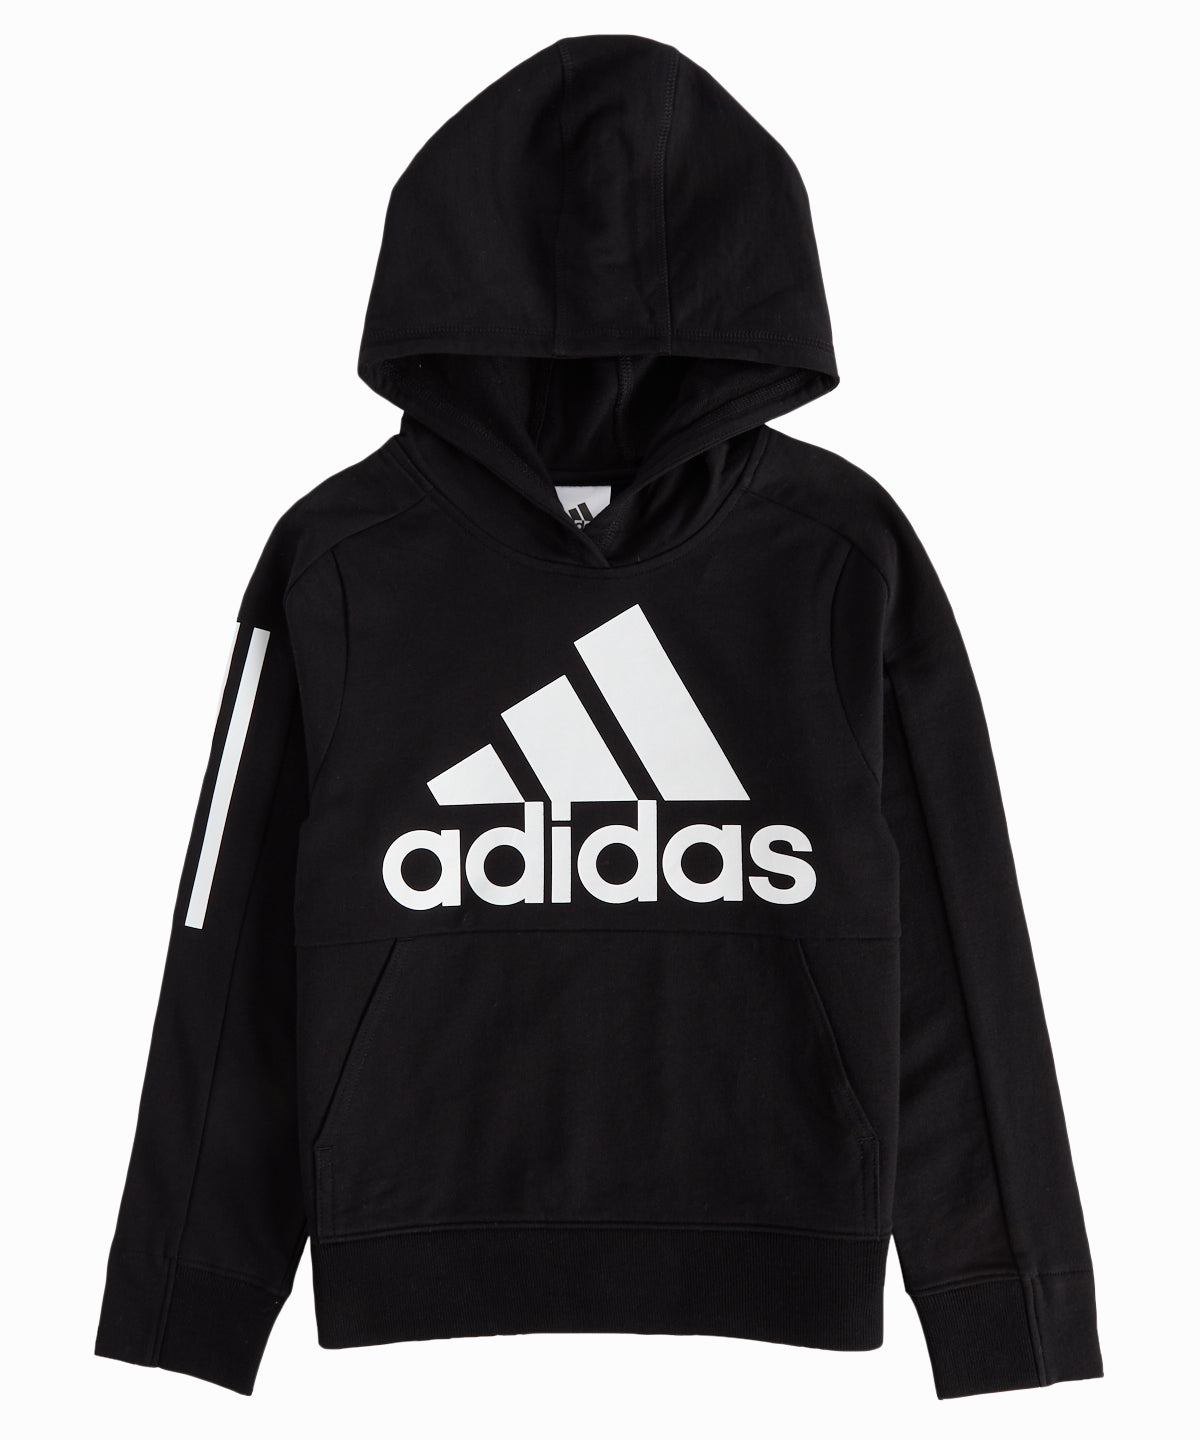 Transitional Pullover Hooded Sweatshirt